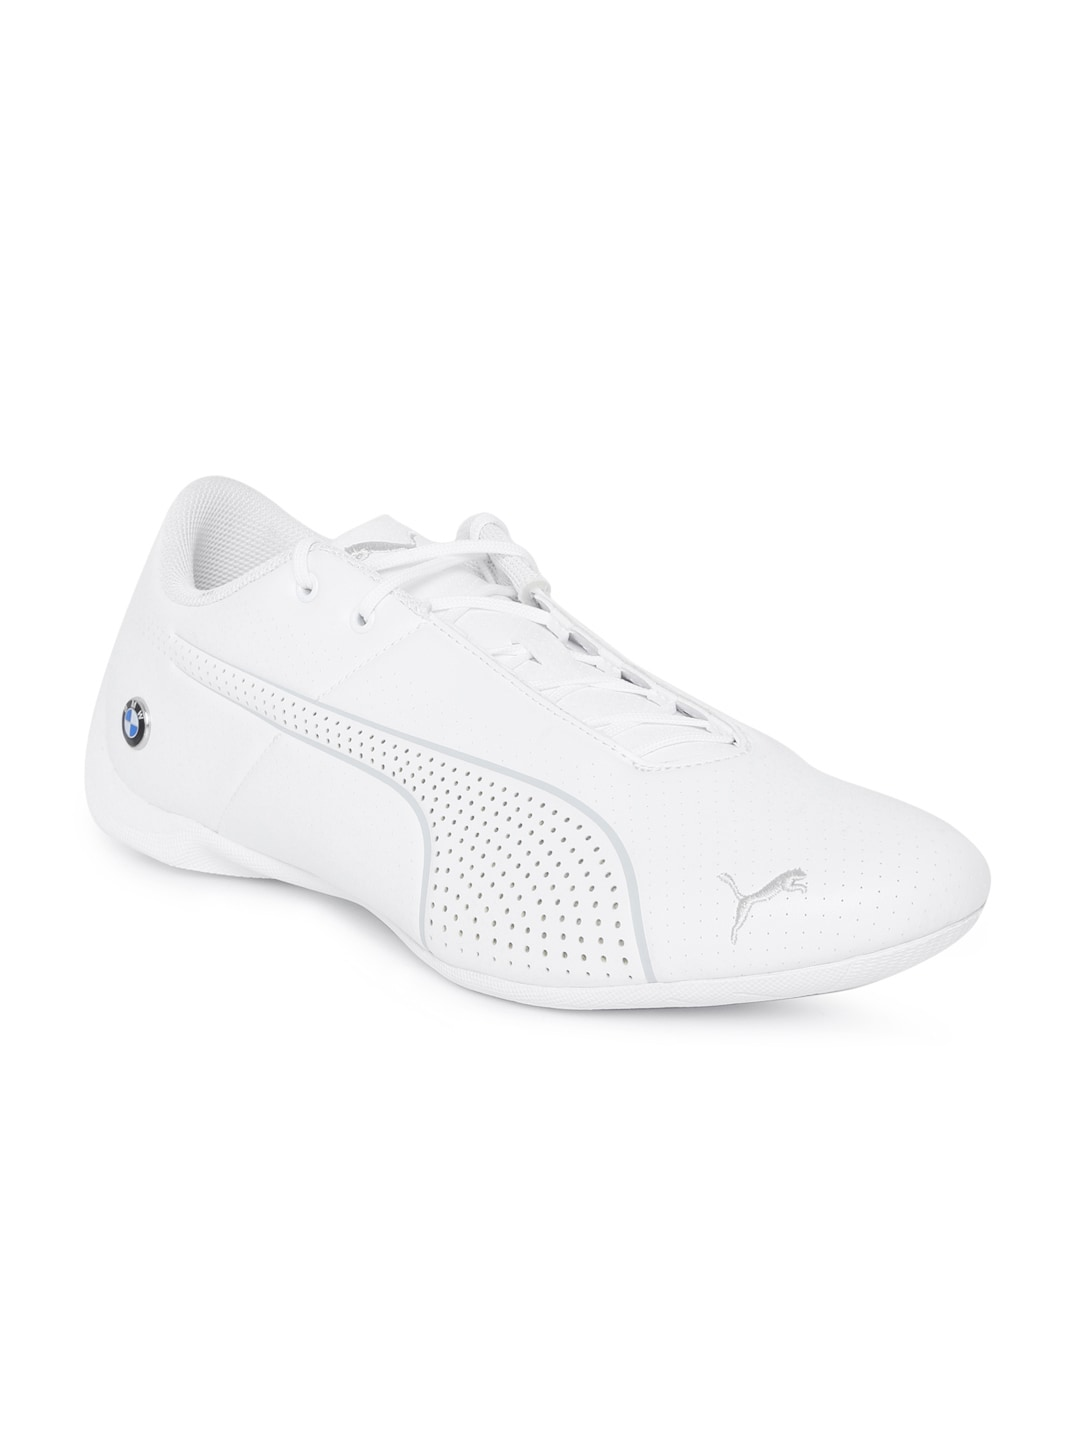 Puma Future Cat Shoes - Buy Puma Future Cat Shoes online in India f707f4cb2